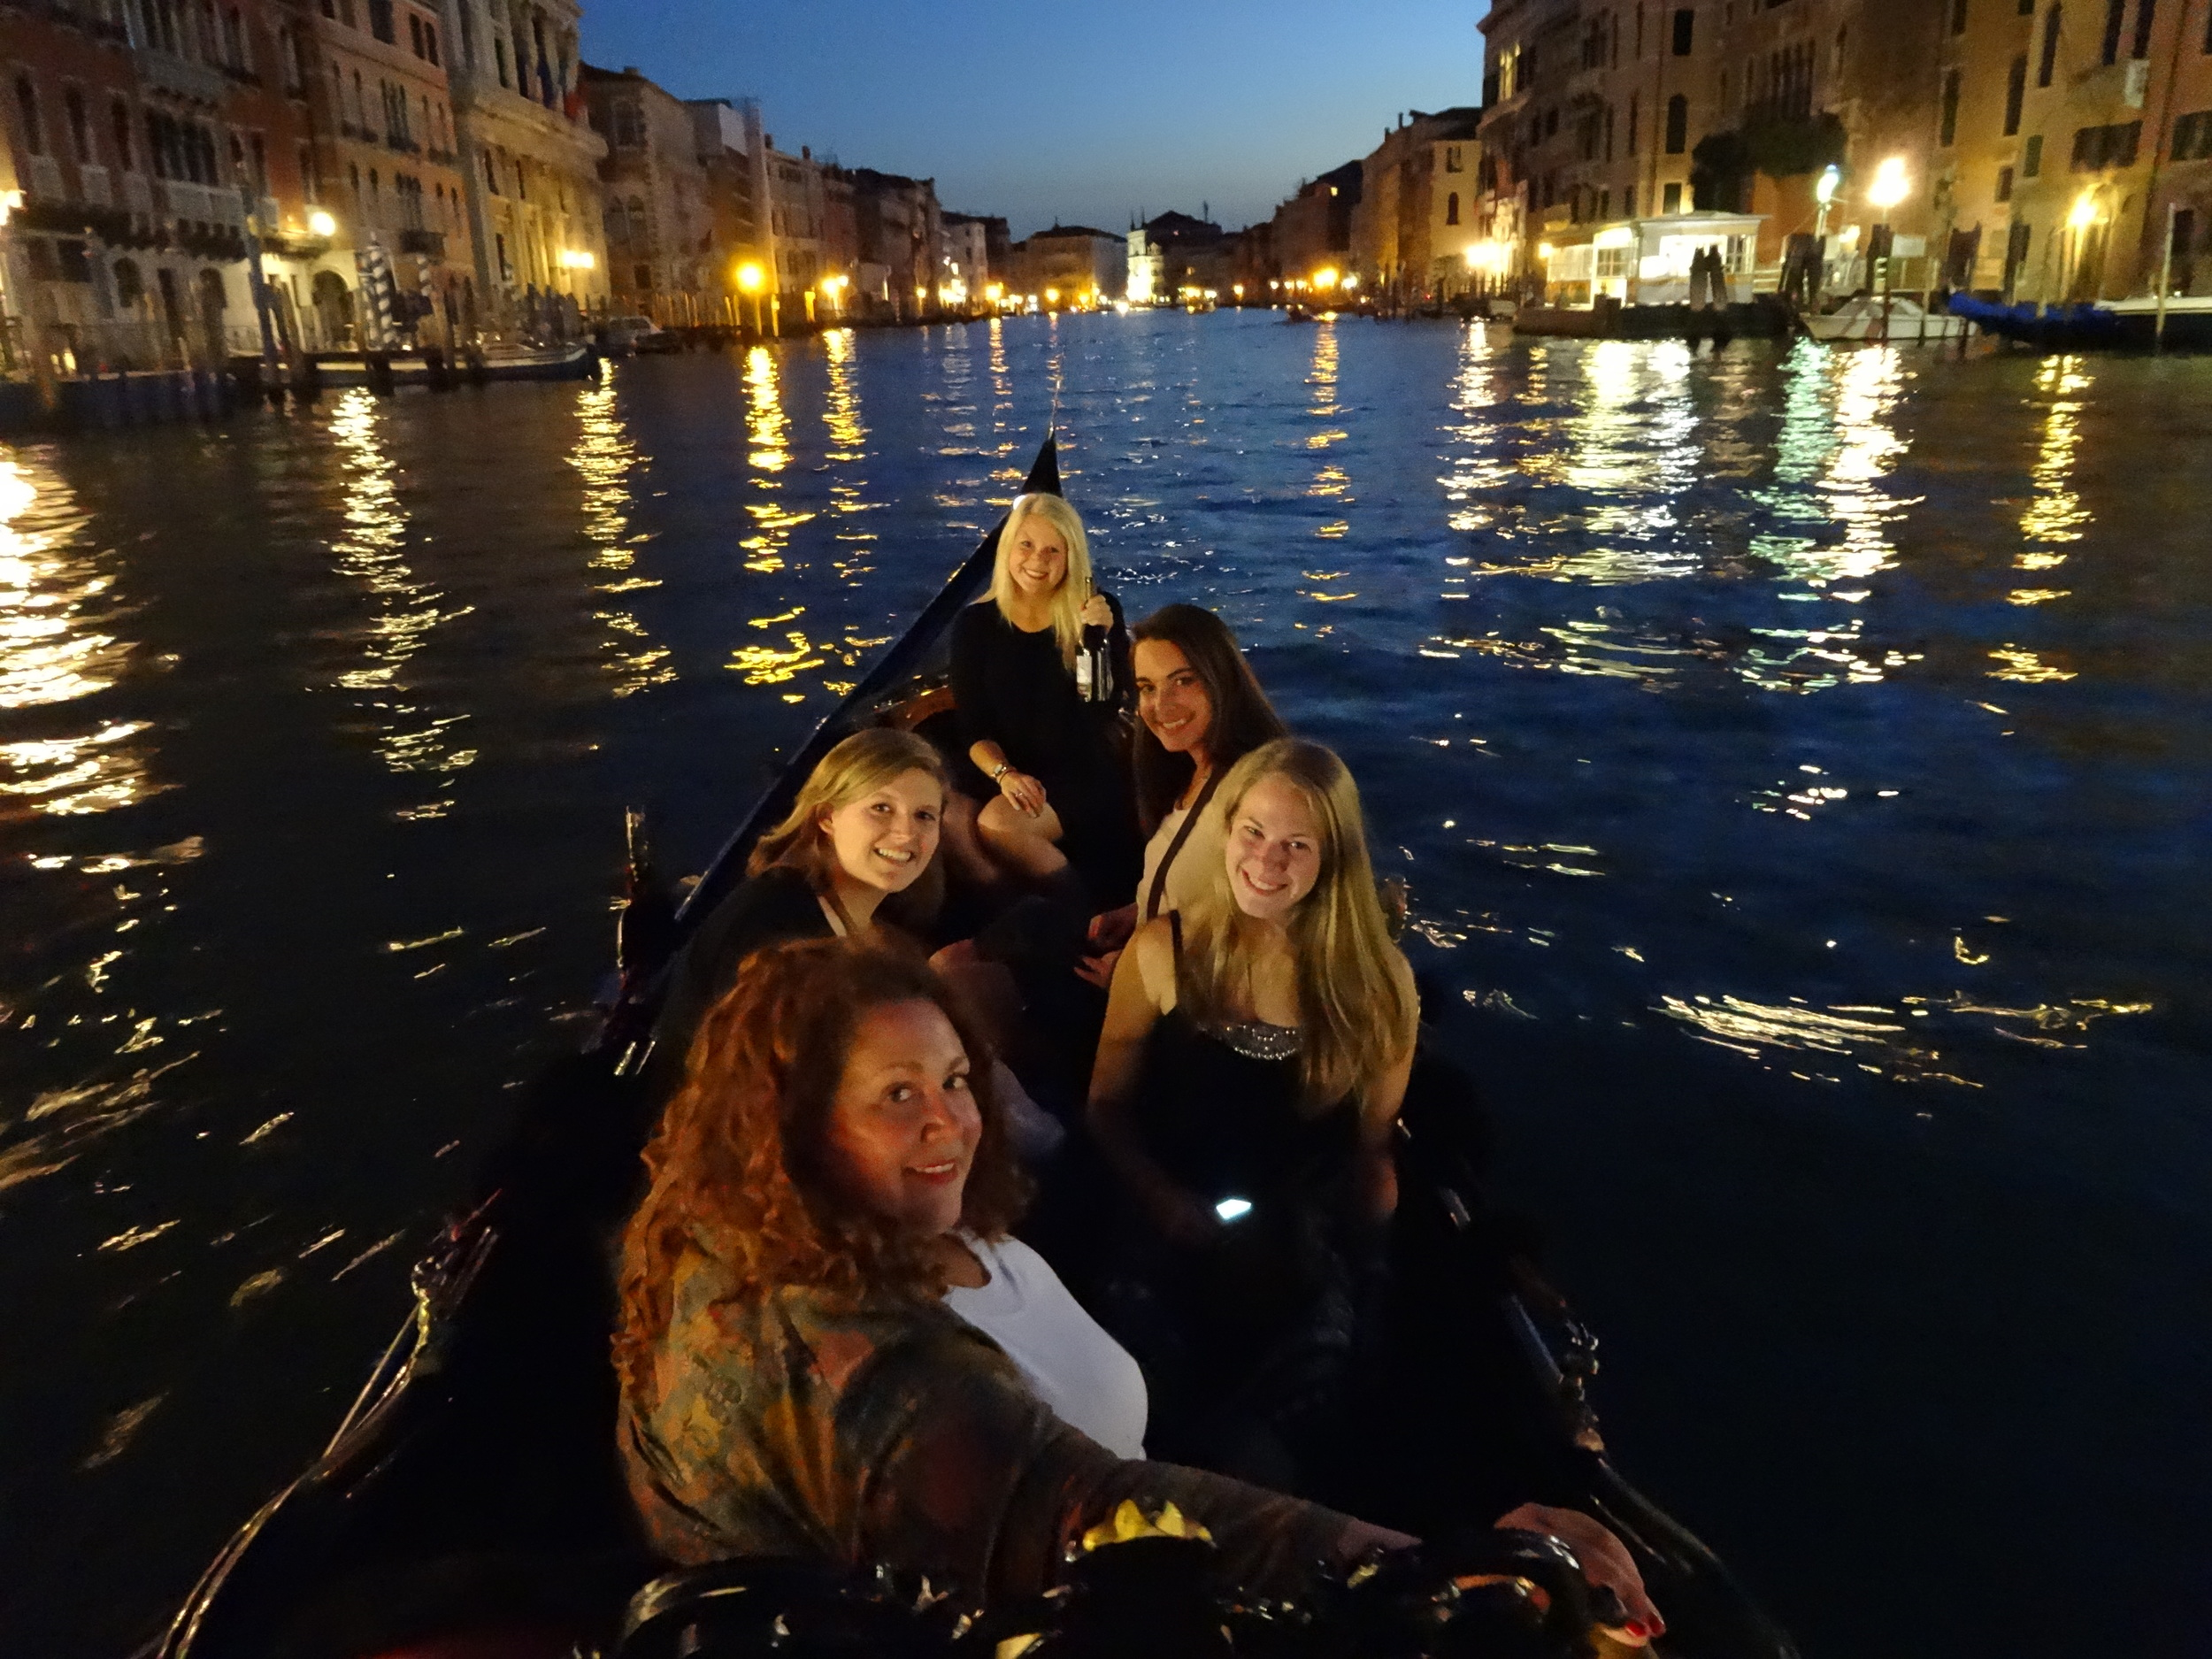 Meg, at bottom, with some of her students in Venice. Each summer, Meg takes college students on a whirlwind tour from her home base of London to Amsterdam, Bruges, Paris, Lucerne, Venice, Florence, and Rome.